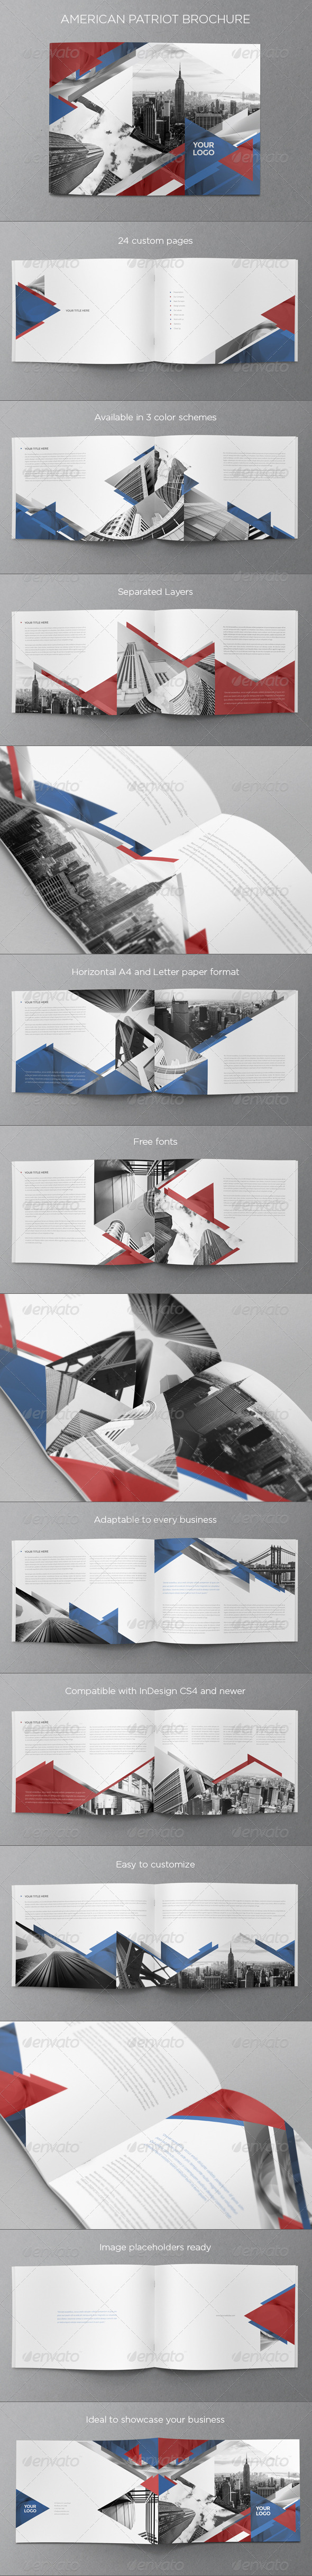 GraphicRiver American Patriot Brochure 6339354